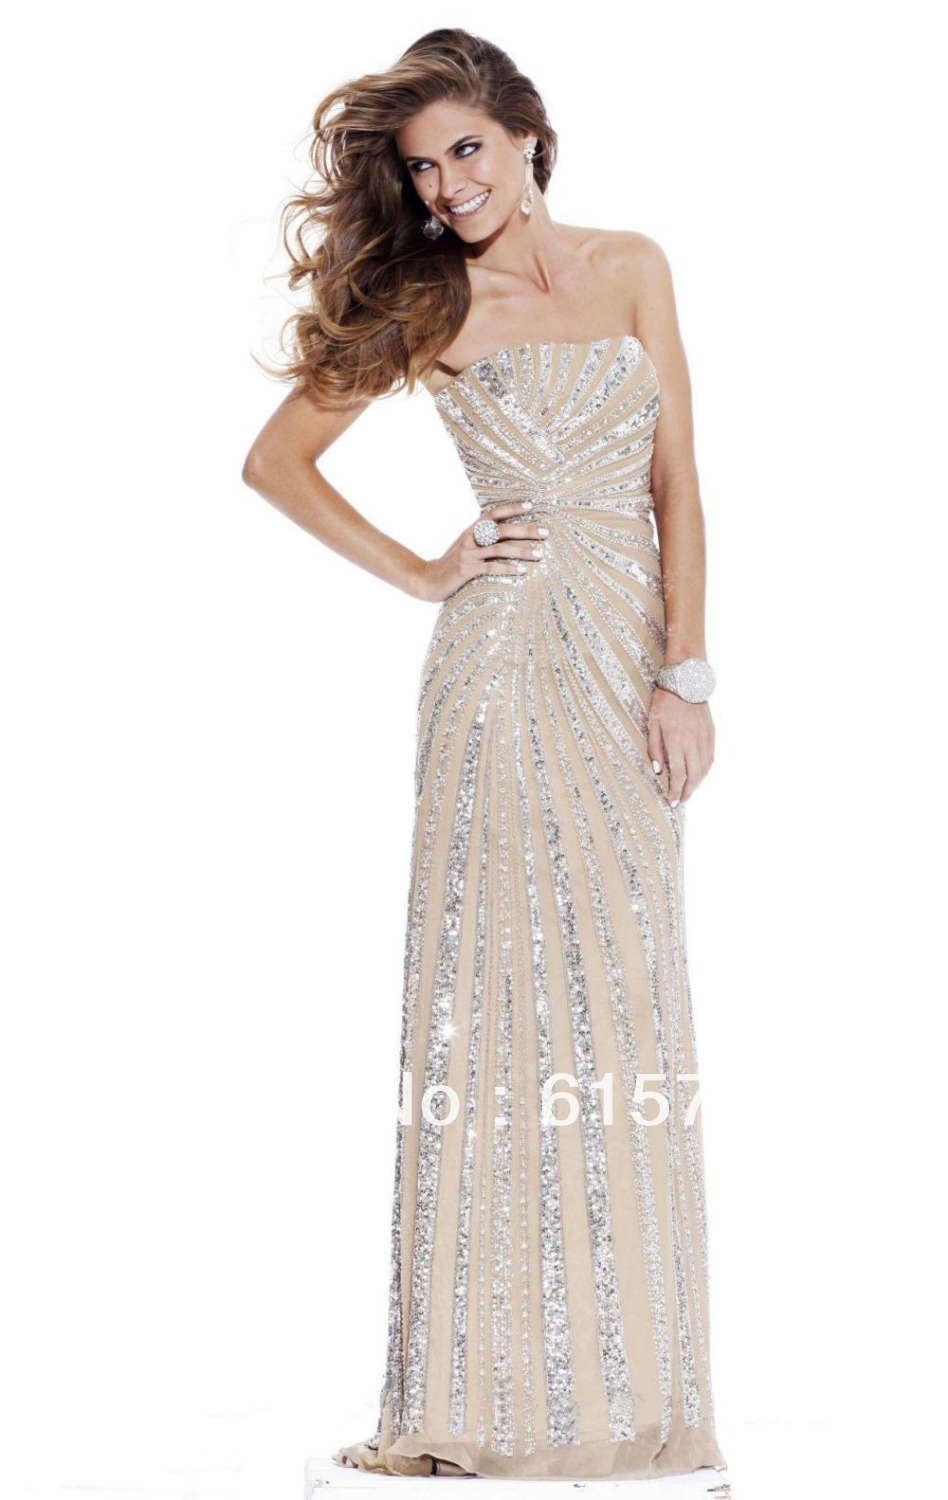 Trying options for My New Years Eve Dress     I think this is one of my Pinterest